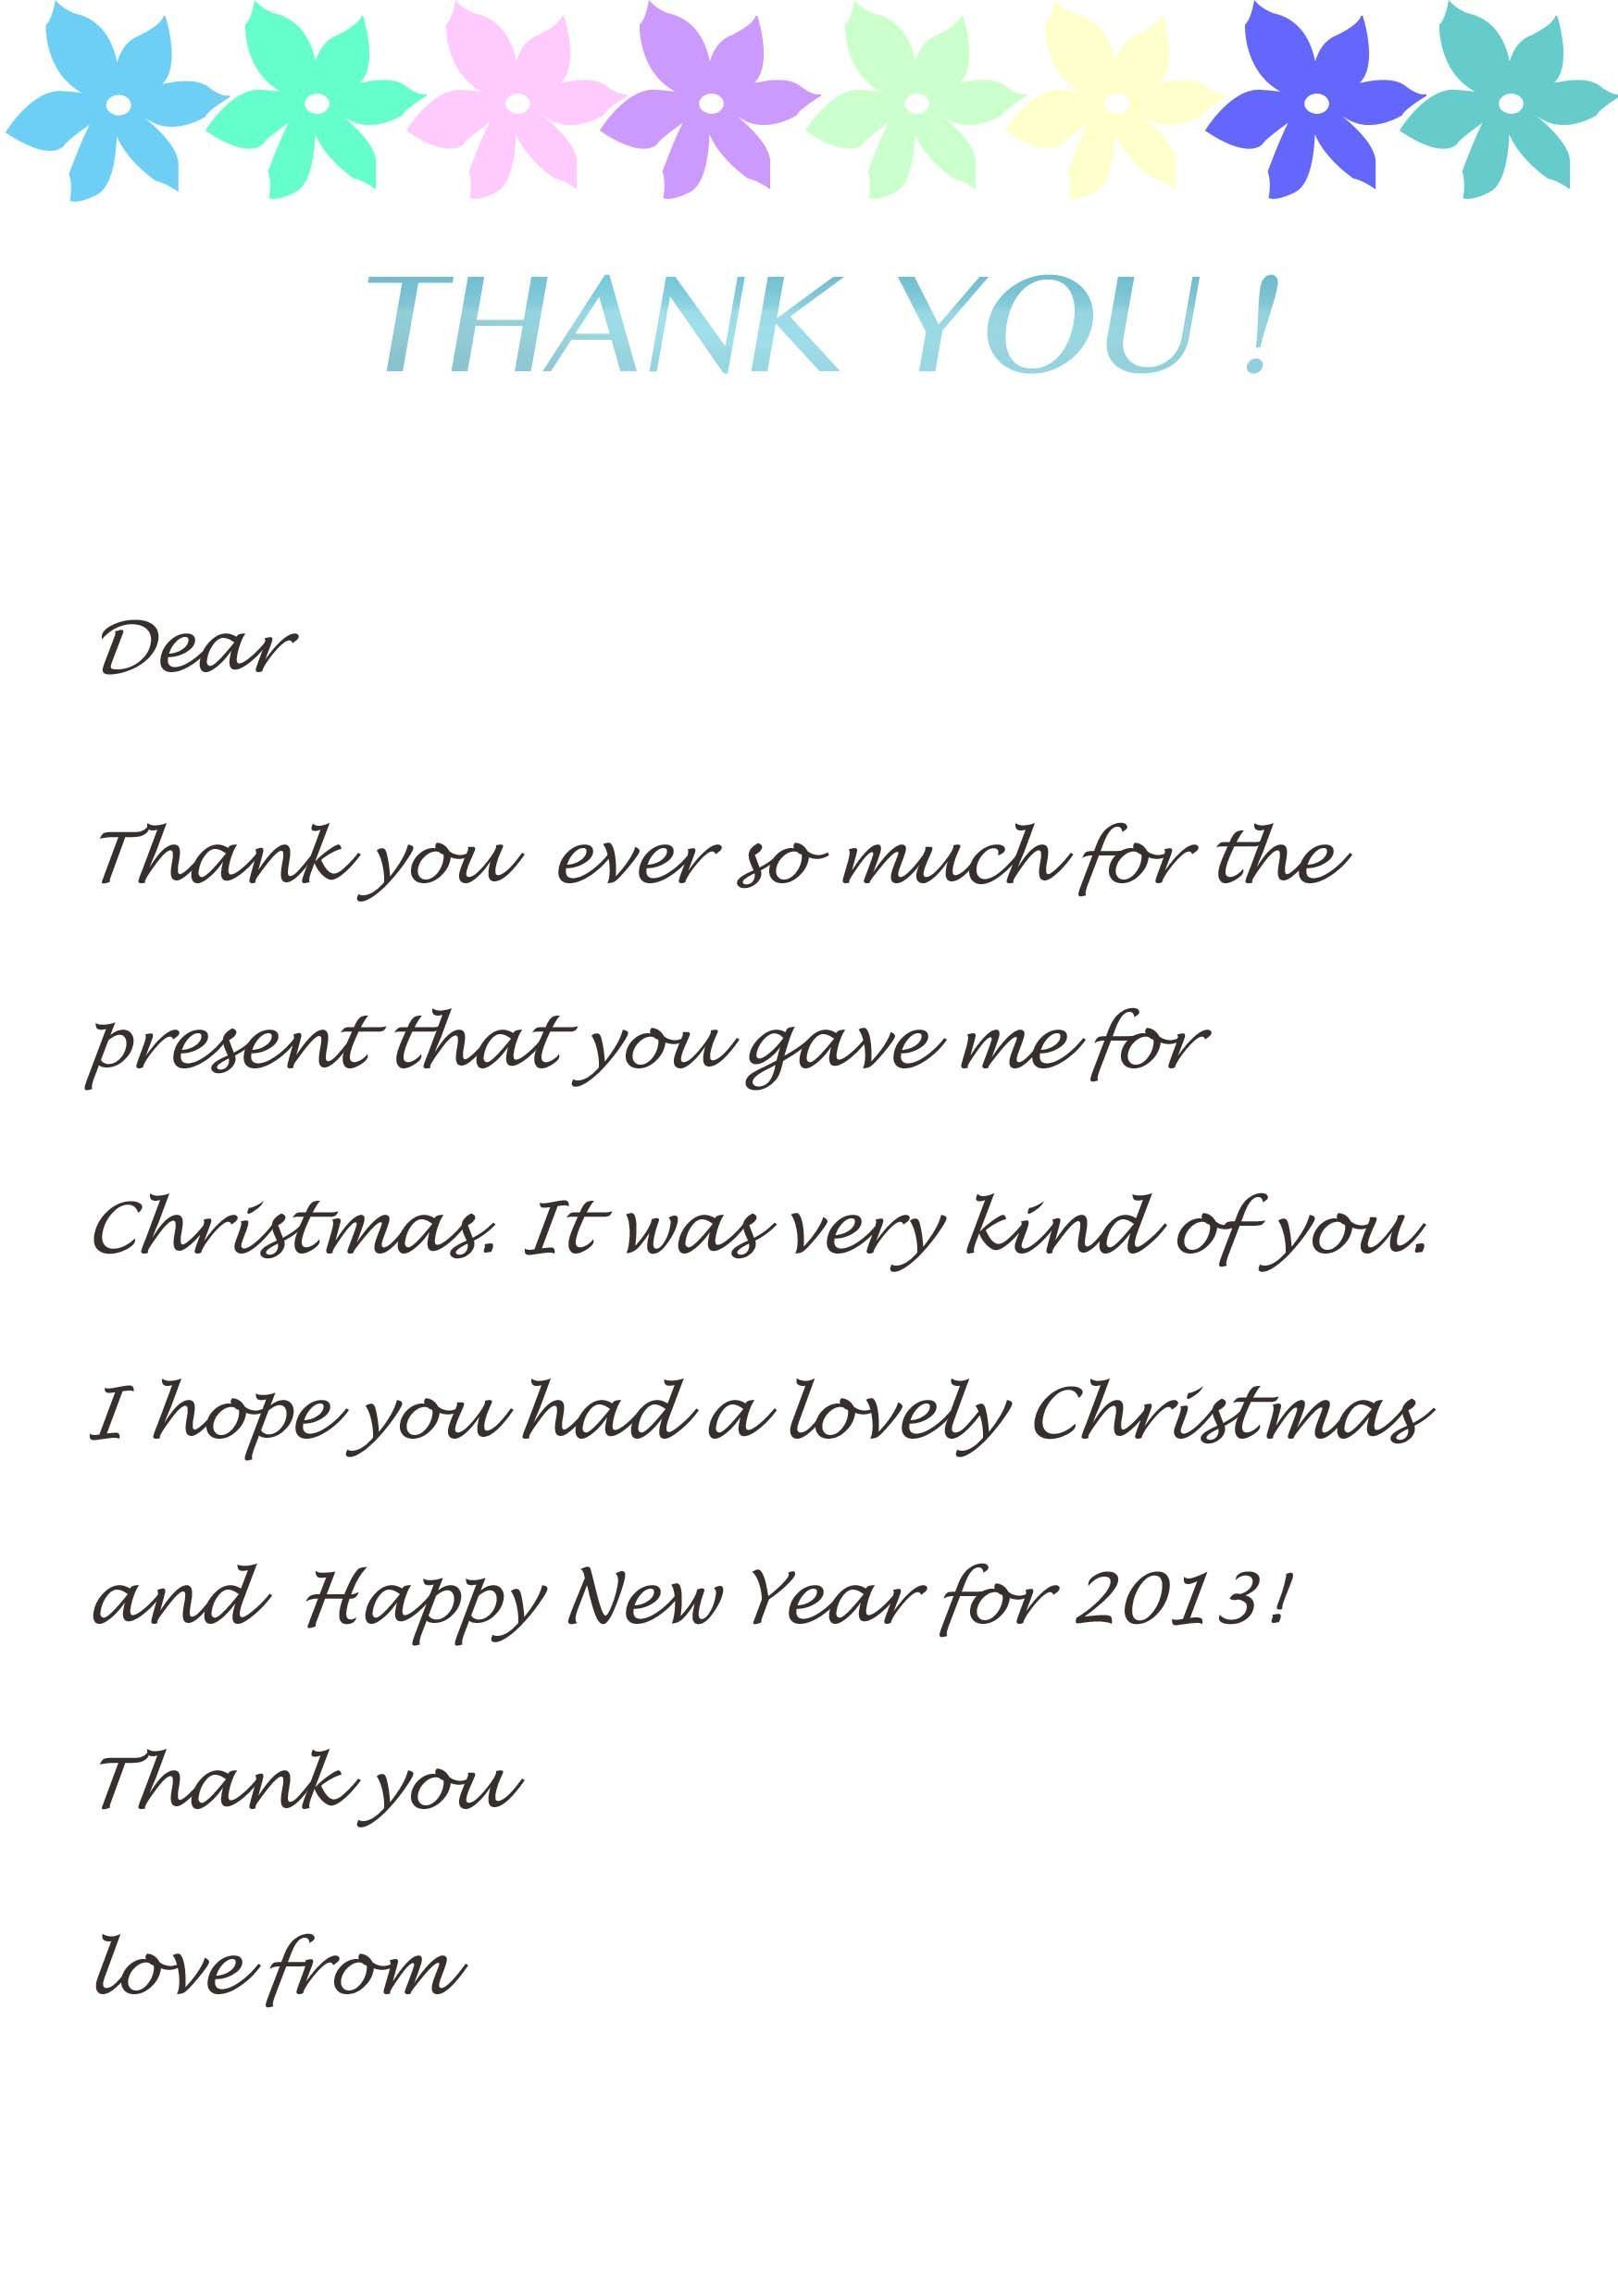 Thank you letter notes christmas fun holiday parties how write the thank you letter notes christmas fun holiday parties how write the perfect note eco blog mom spiritdancerdesigns Choice Image